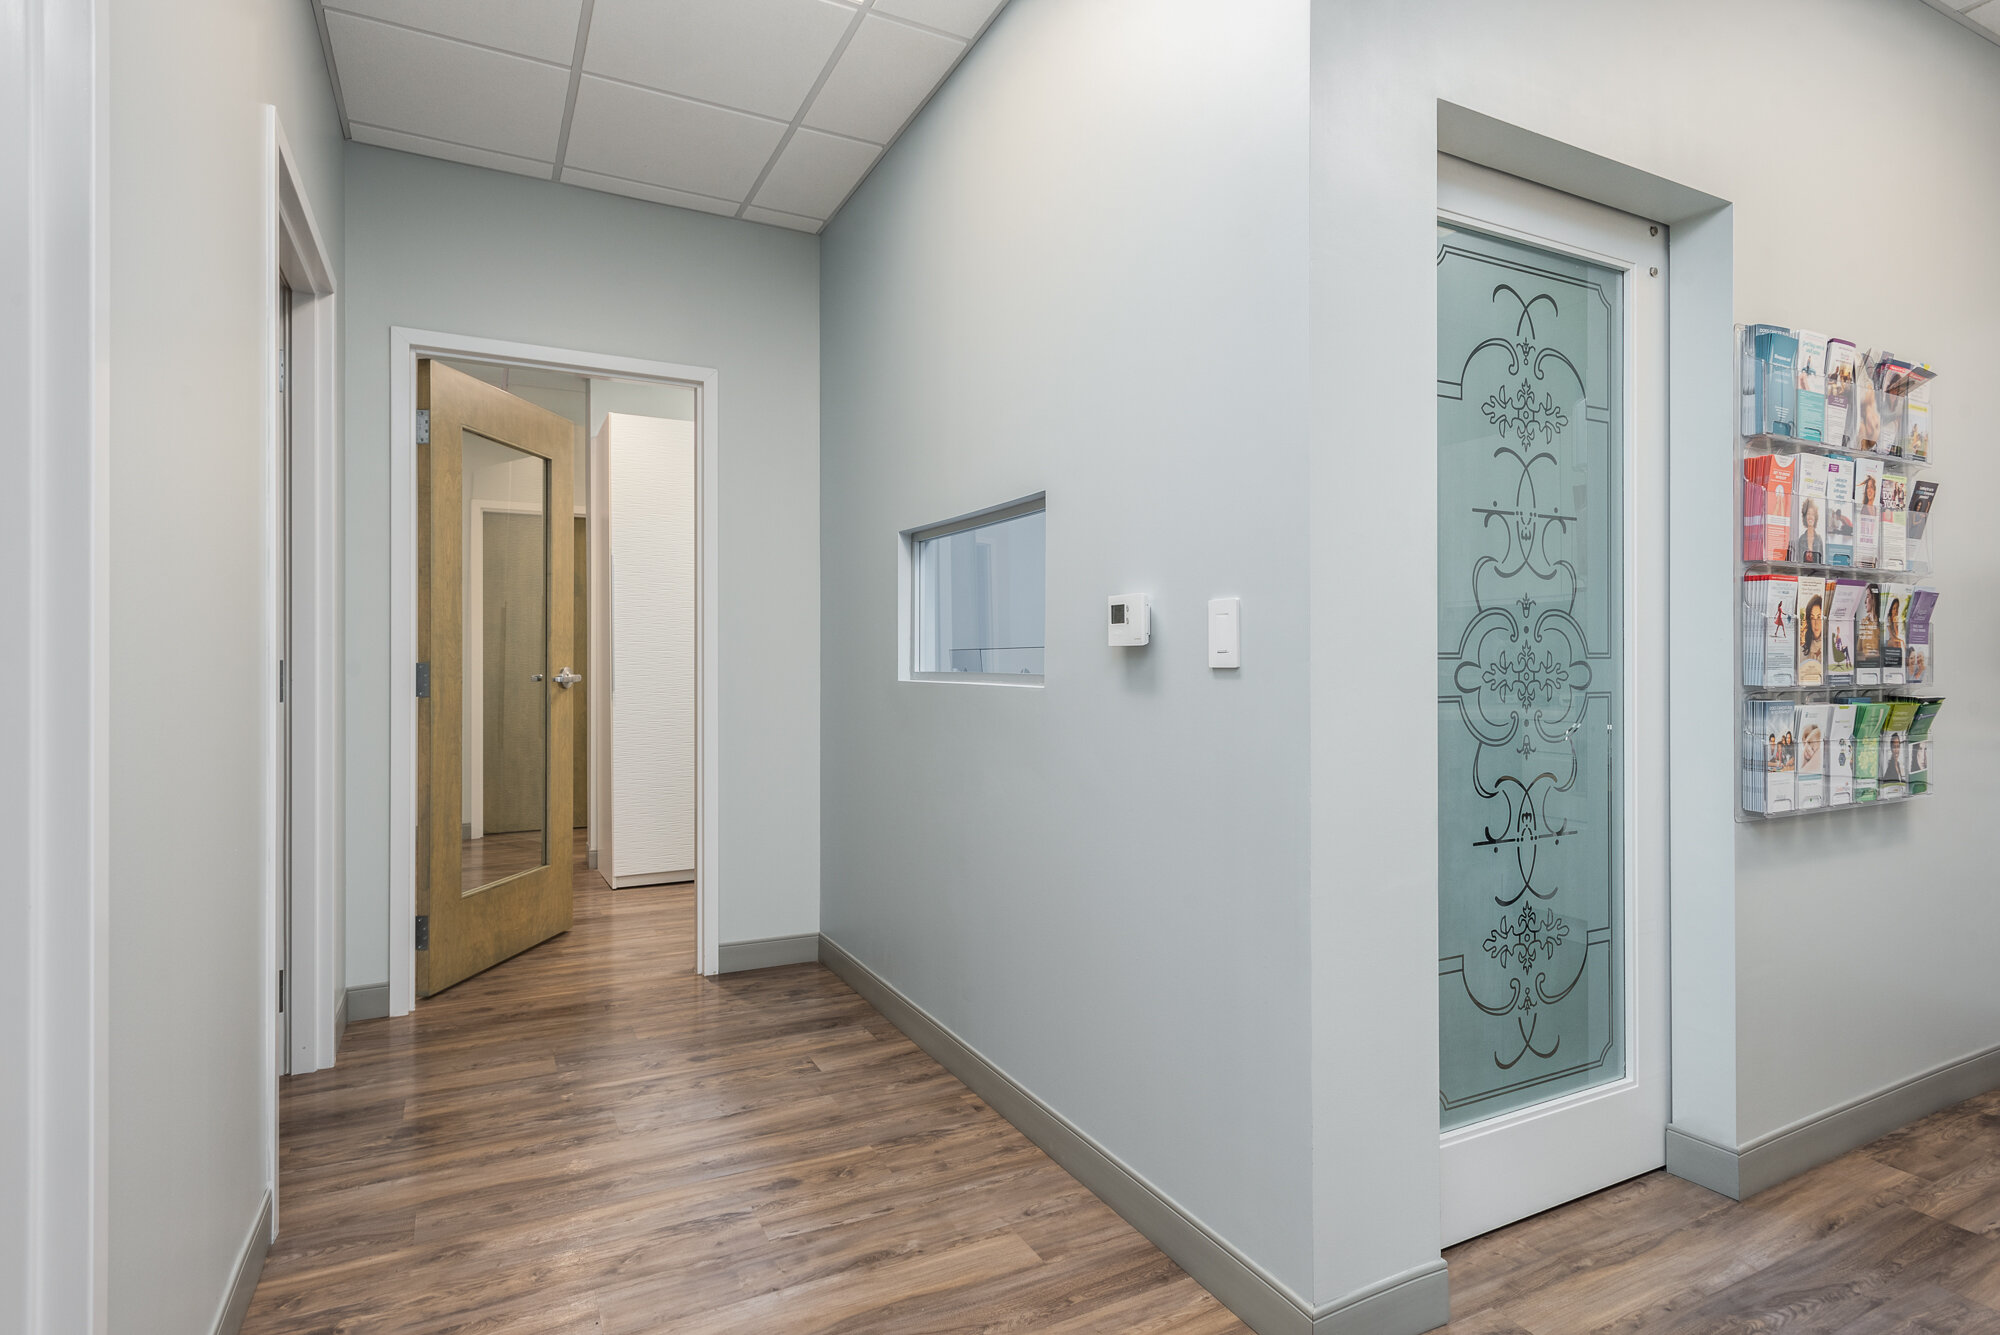 Micamy Design Studio_Interior Design_Faben Obstetrics and Gynelcology_North Florida_Riverplace_San Marco_Healthcare_Office_Medical_Exam Room_Renovation_Patcraft_Crossville_ArcCom (2).jpg